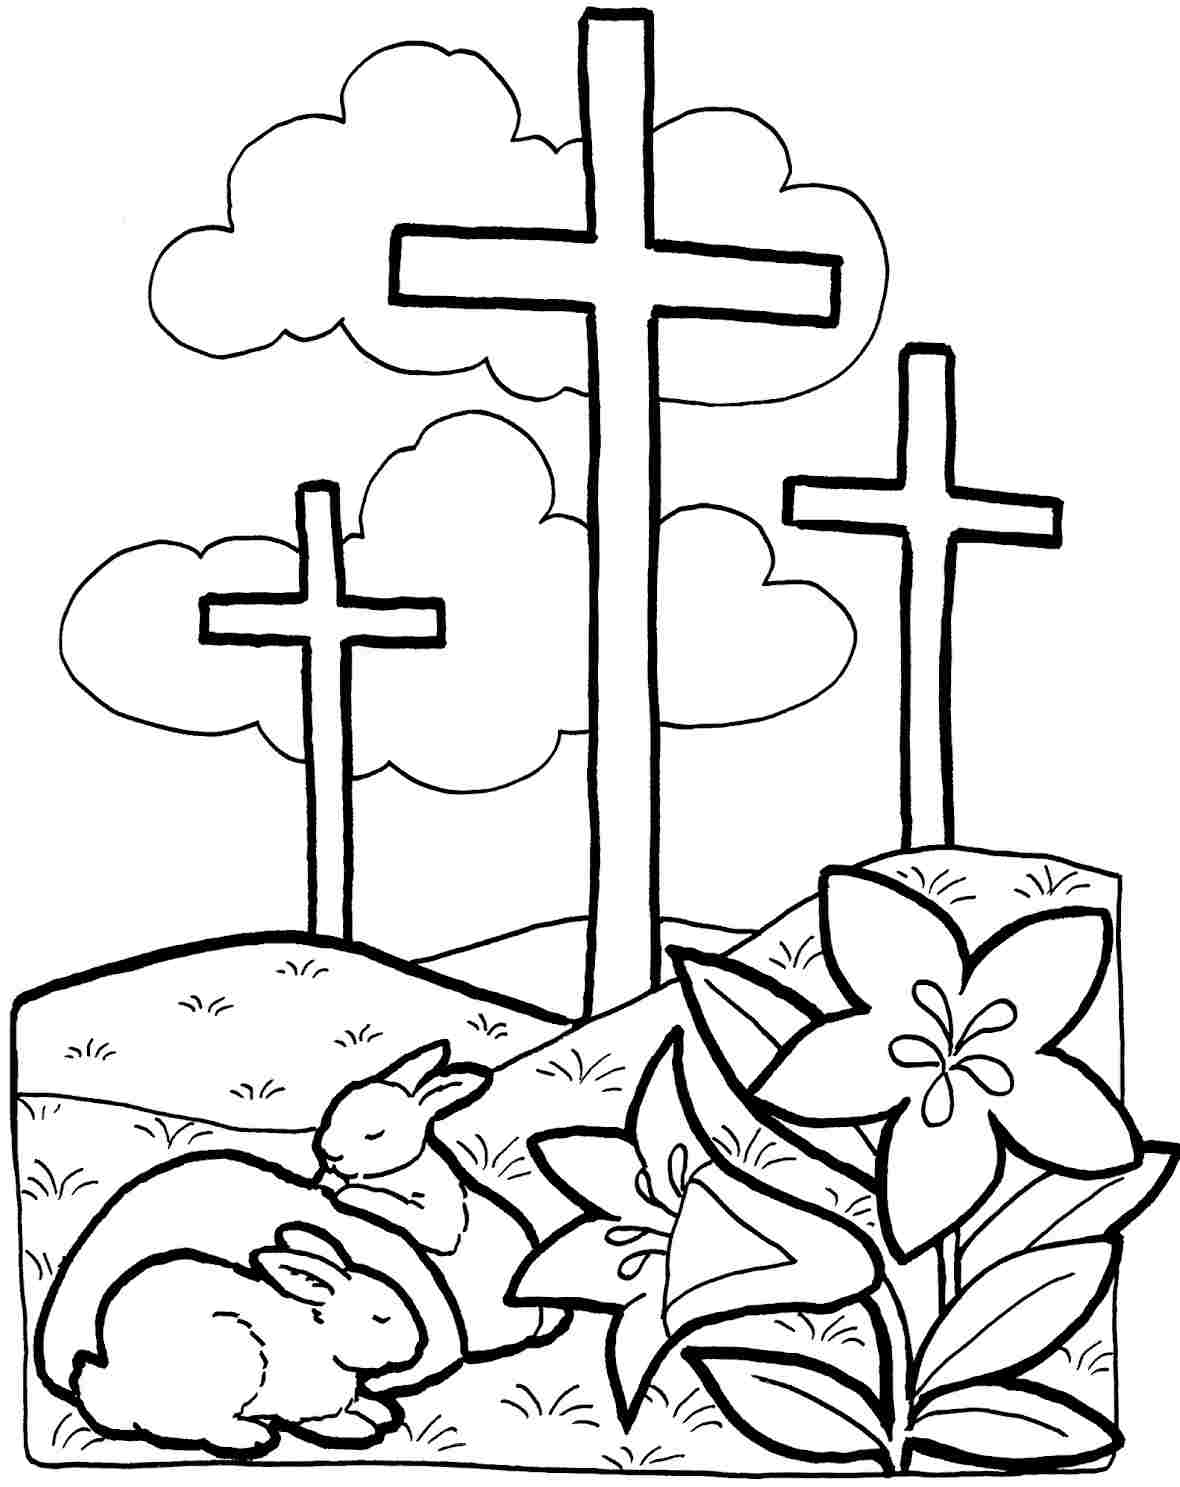 Easter coloring pages printable religious - Religious Spring Coloring Pages Born Again Girl Coloring Pages Submitted Id 2102 Uncategorized